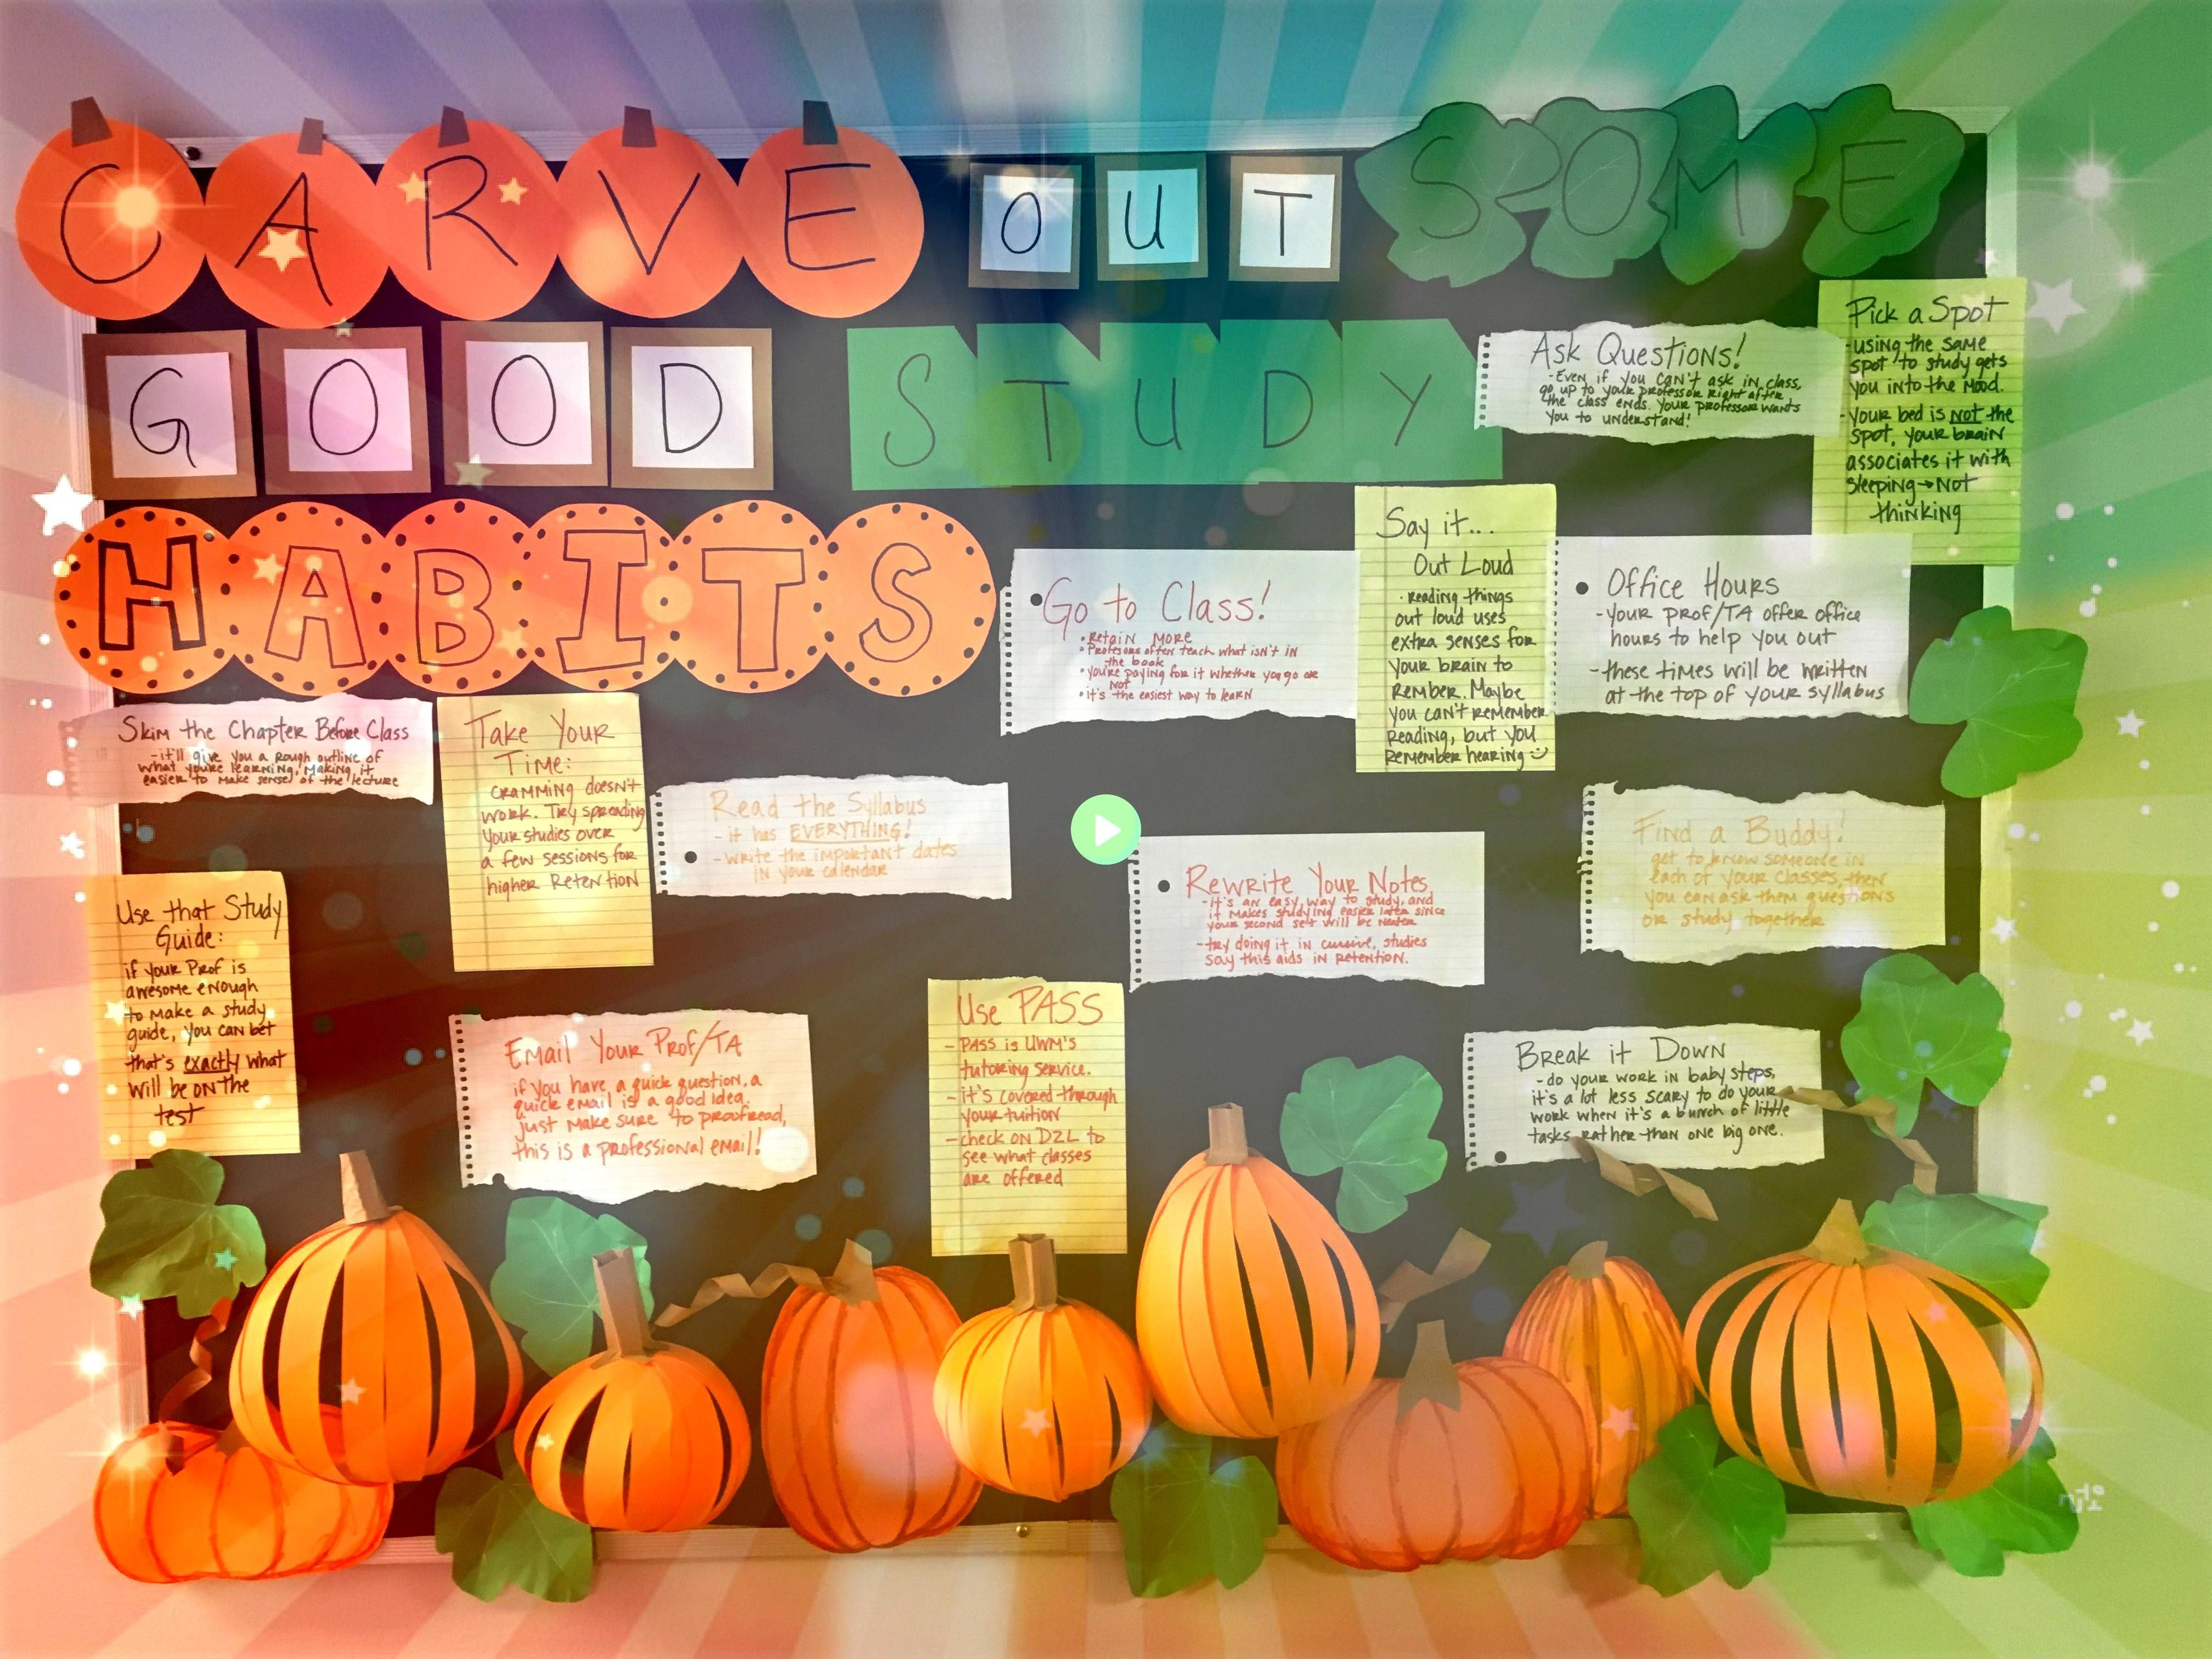 #octoberbulletinboards #bulletinboard #halloween #studytips #bulletin #pumpkins #october #reslife #board #pump #raOctober Bulletin Board October Bulletin Board October Bulletin Board October Bulletin BoardOctober Bulletin Board October Bulletin Board October Bulletin Board October Bulletin Board  Fall into healthy habits bulletin board, elementary school, nurses office, bilingual  Fall Study Habits board  Skeleton Bulletin board  Fall Into Healthy Habits  RA bulletin board Slippery Rock U... #oc #halloweenbulletinboards